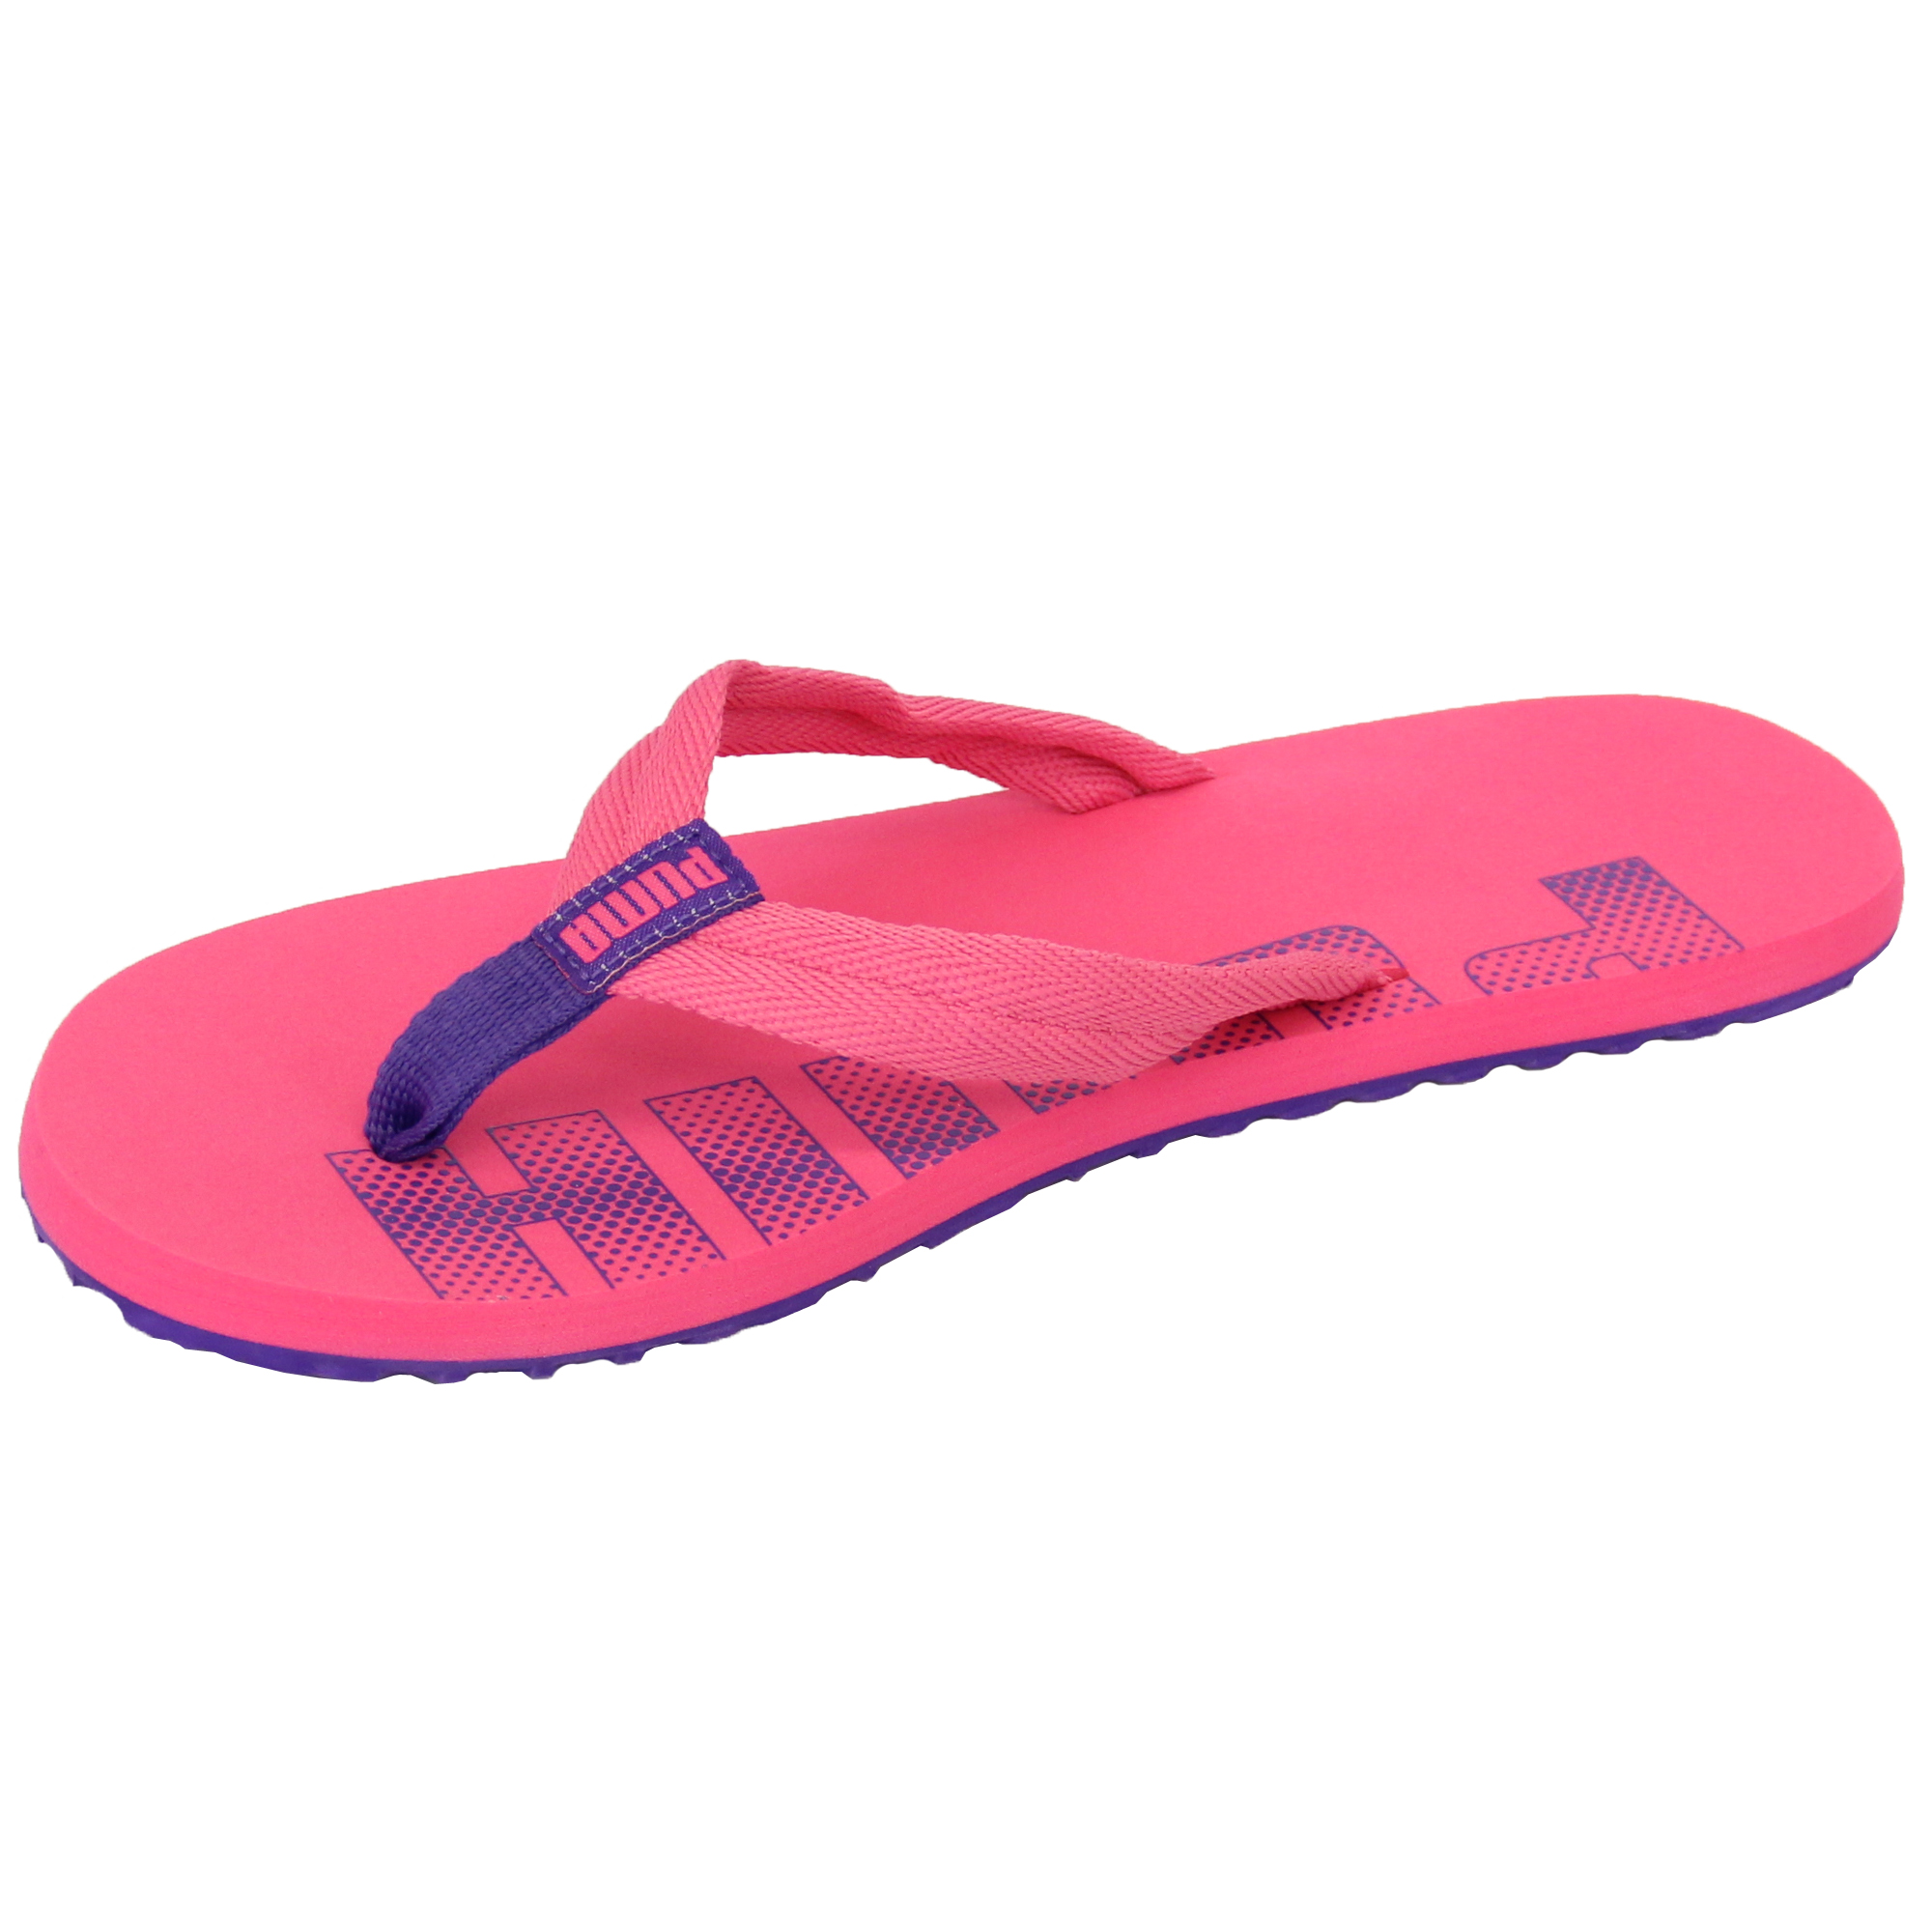 3be724d00408 Boys Puma Epic Flip Flops Kids Toe Post Girls Sandals Summer ...